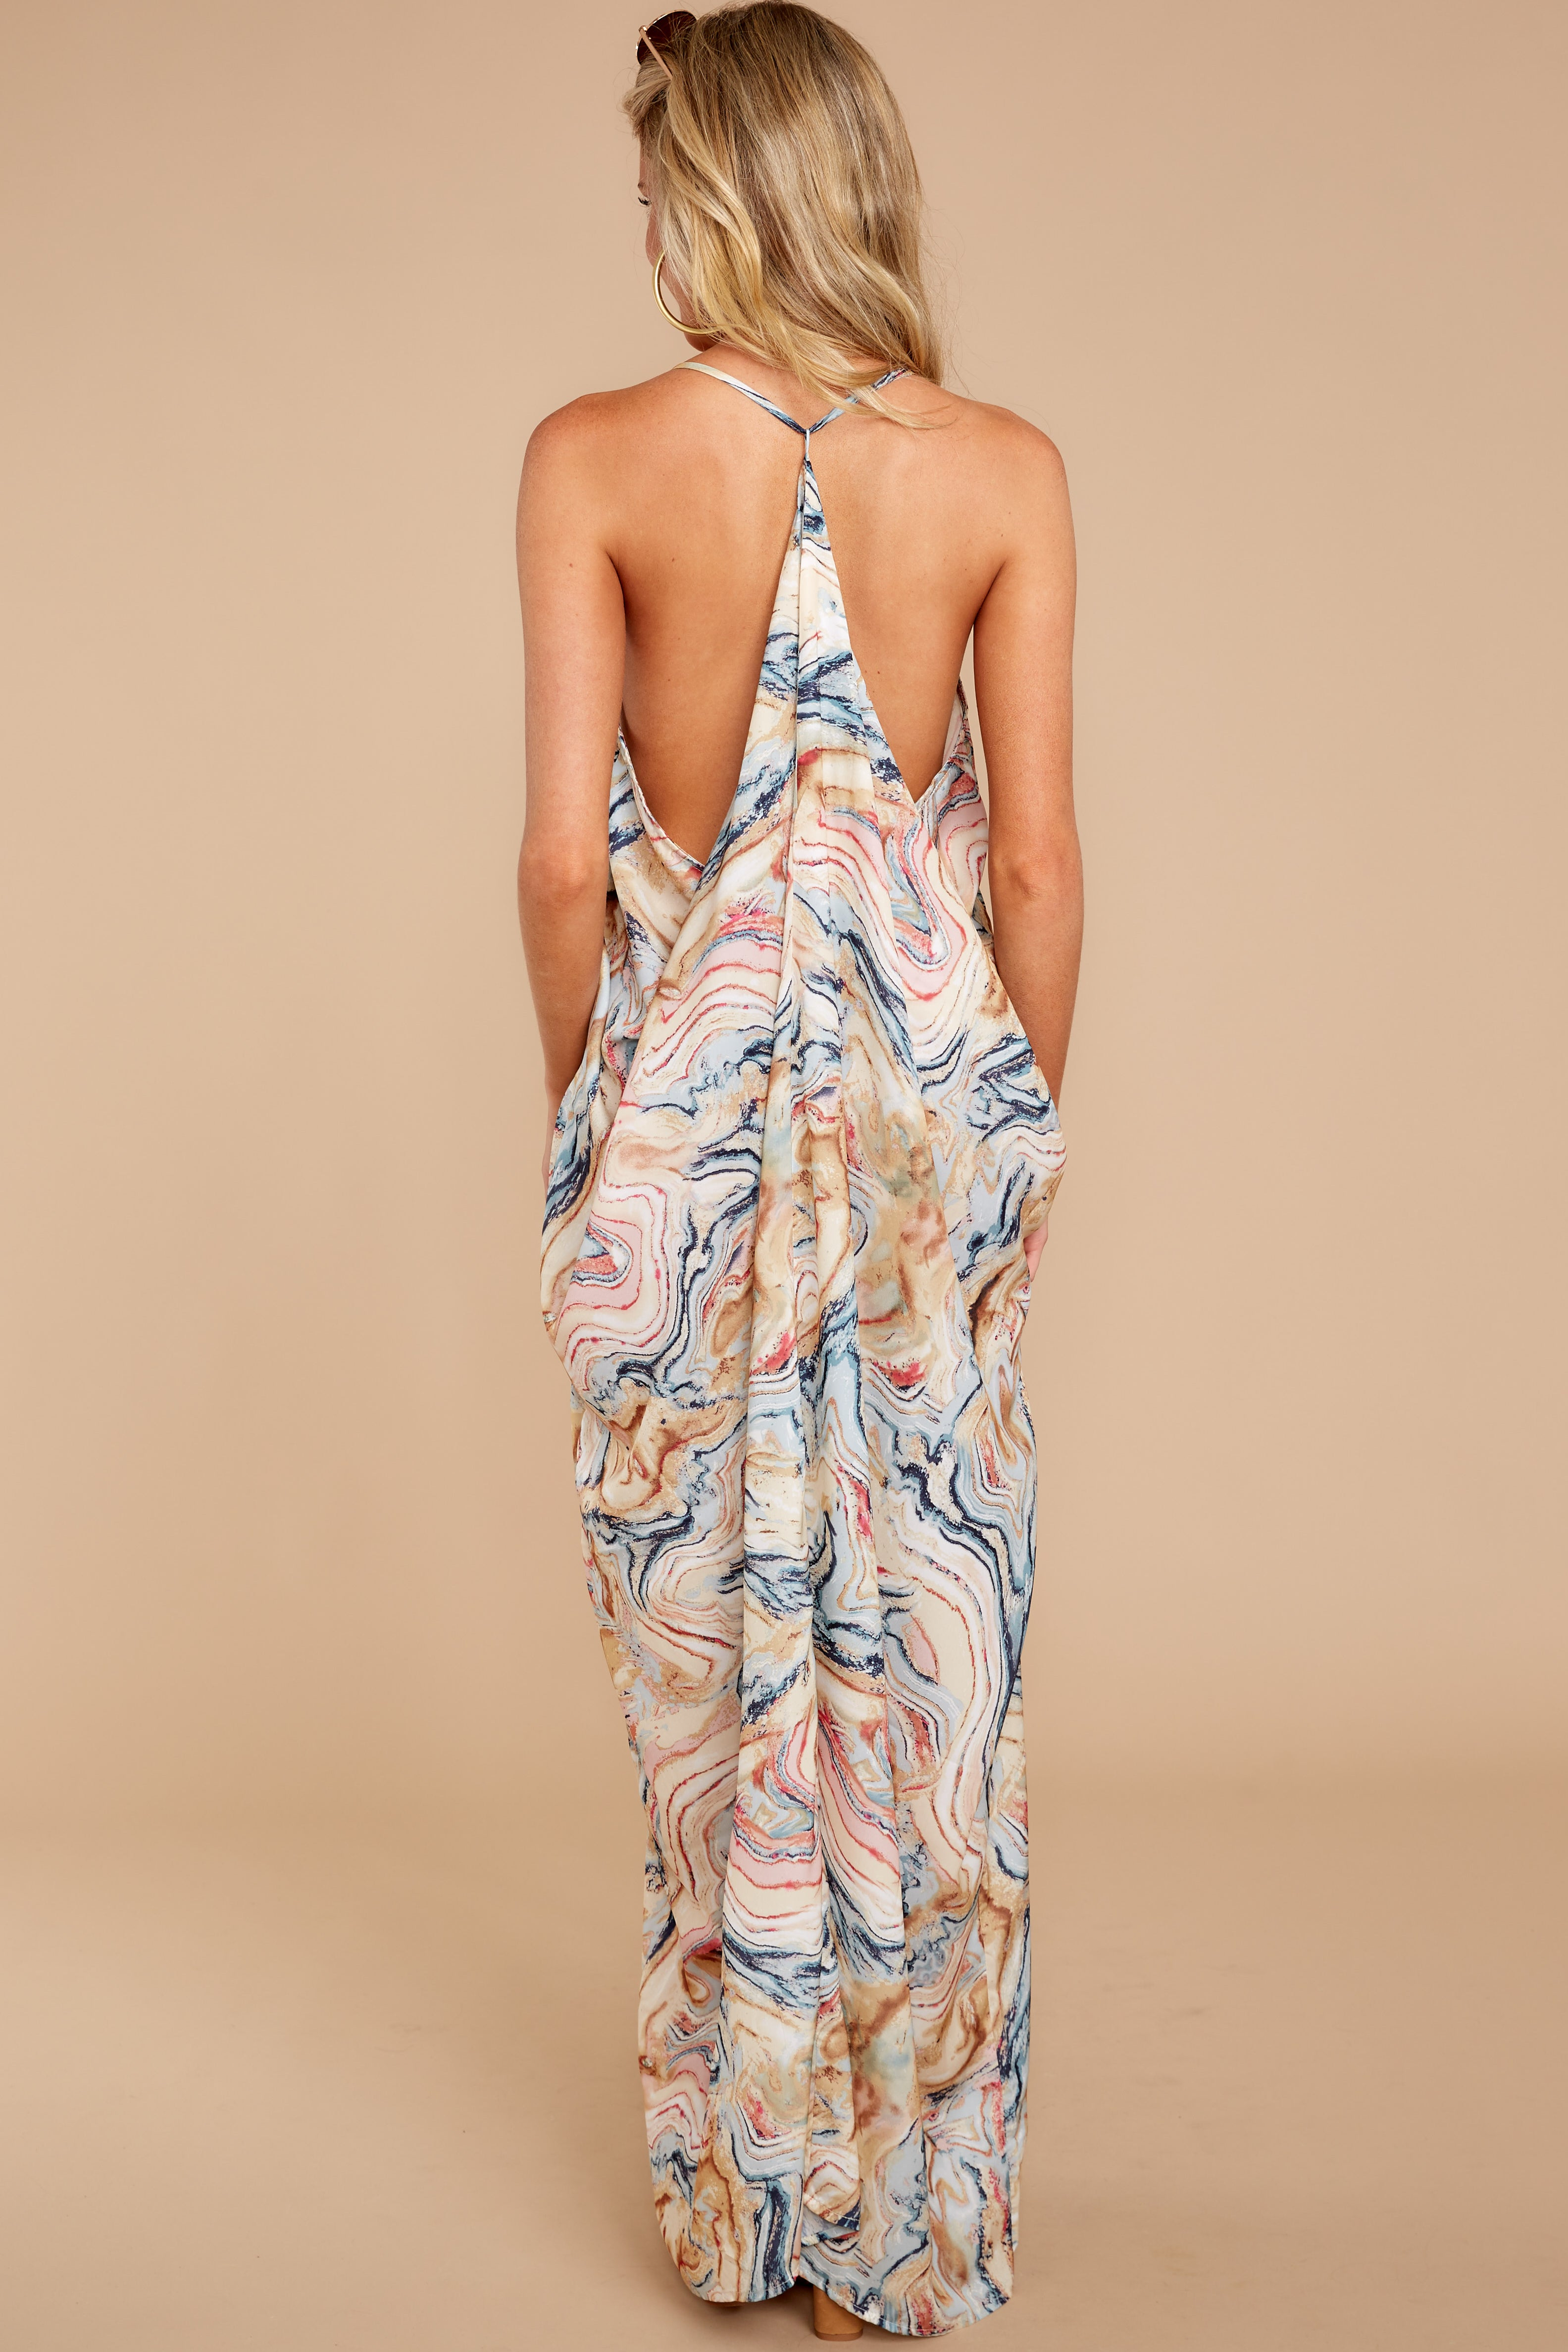 6 Over Land And Sea Tan Multi Print Maxi Dress at reddressboutique.com